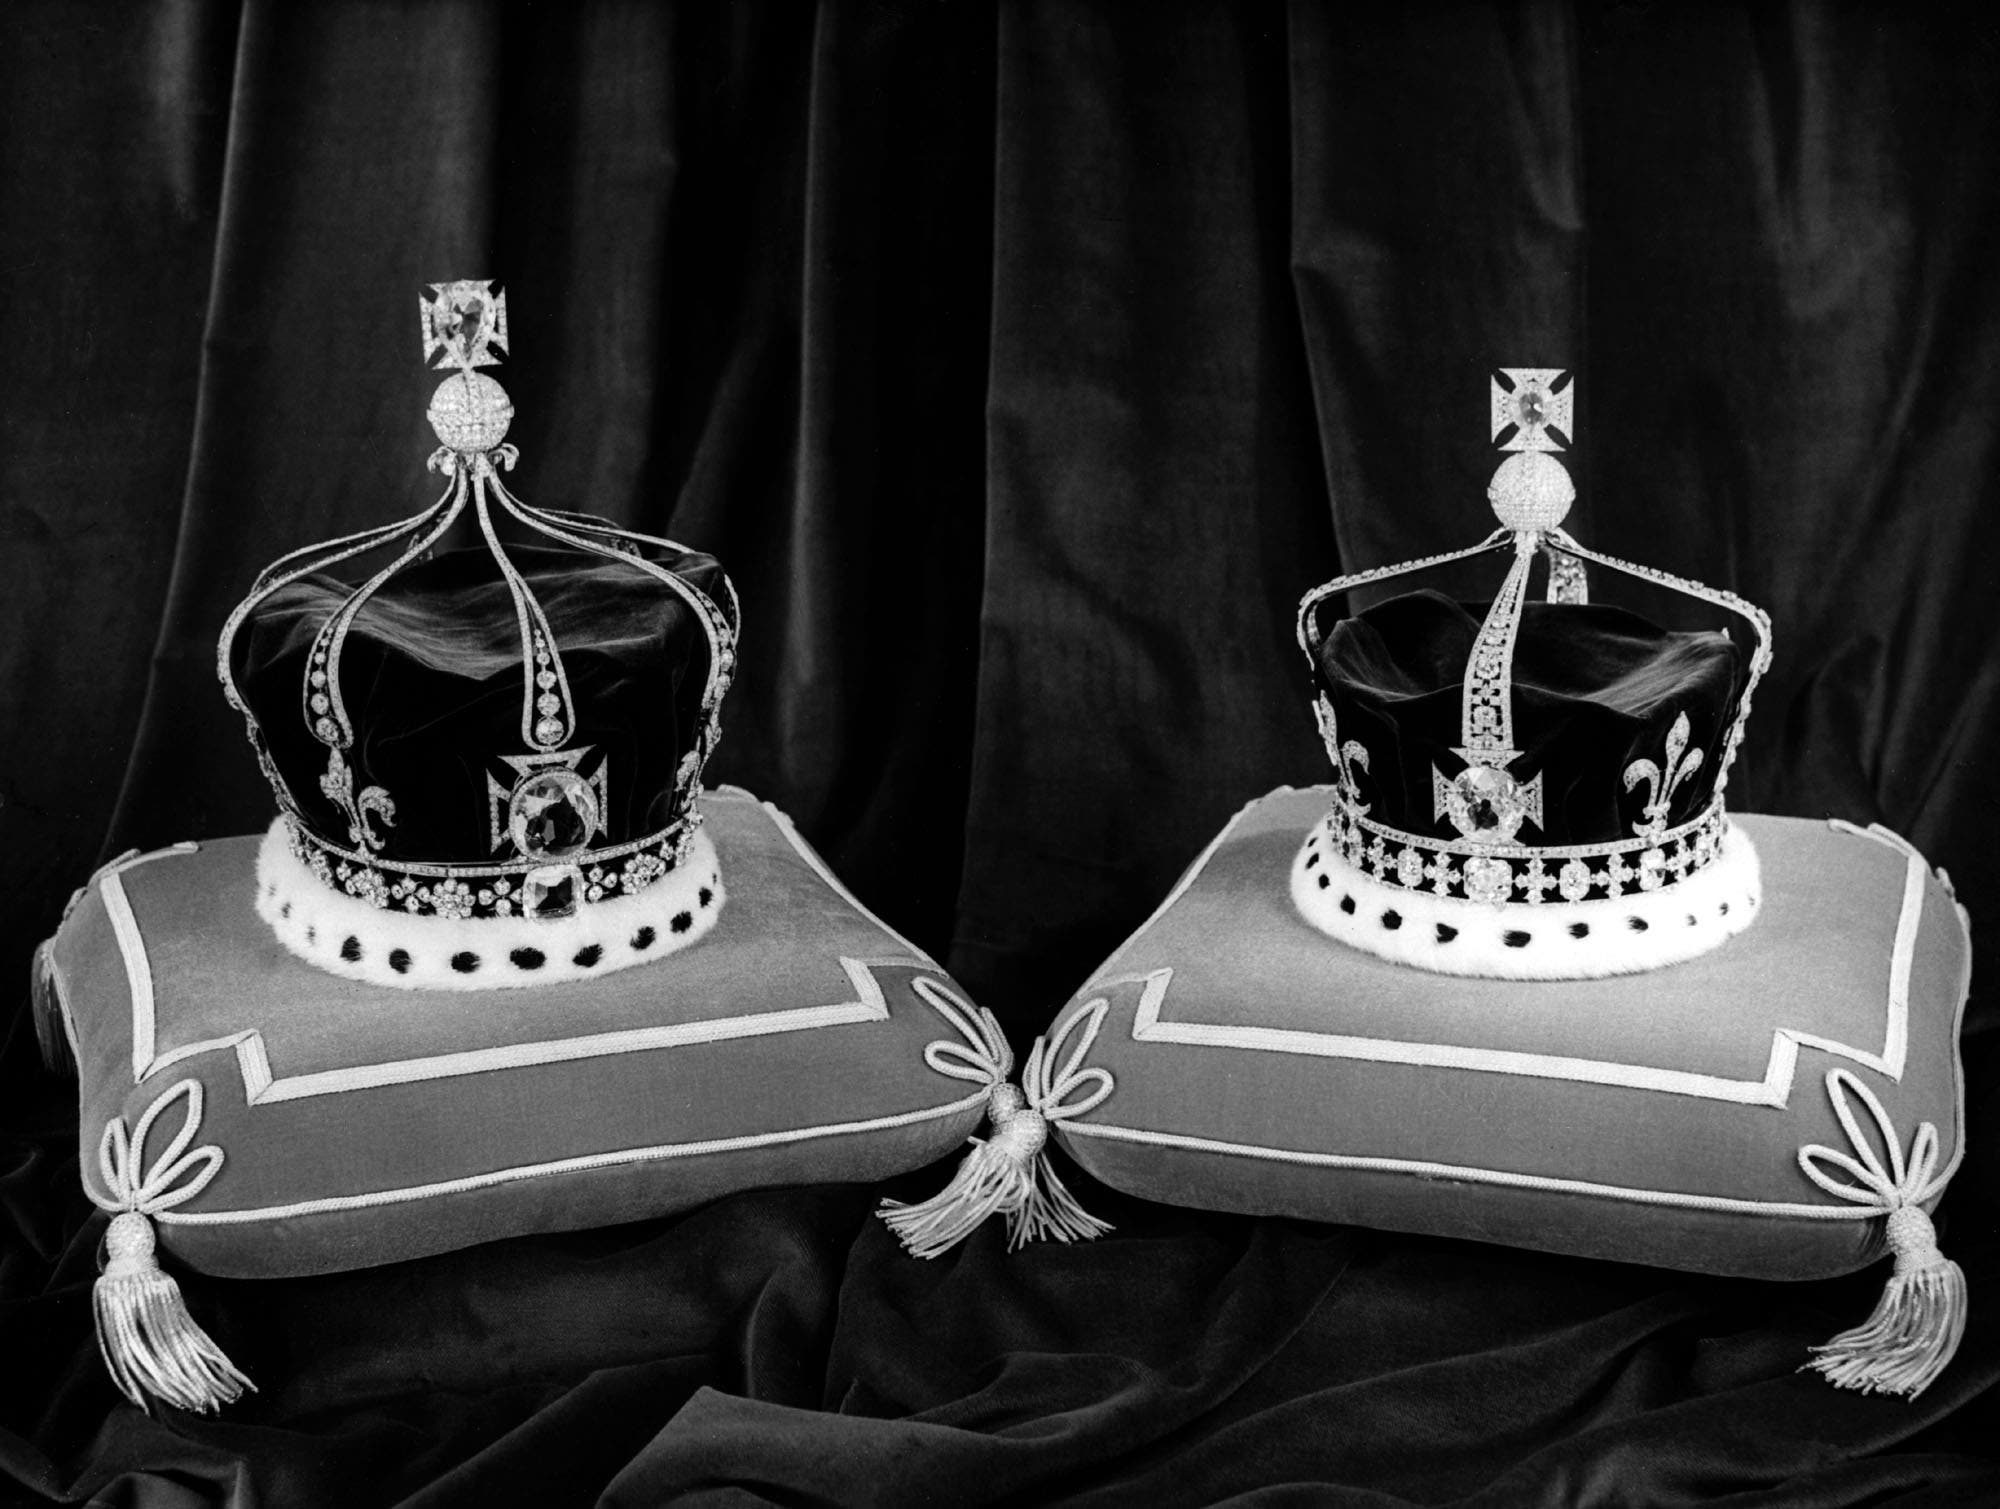 Queen Mary's Crown, which was worn at the Coronation on June 22, 1911. (Photo made at the Tower of London on Nov. 14, 1952, AP)